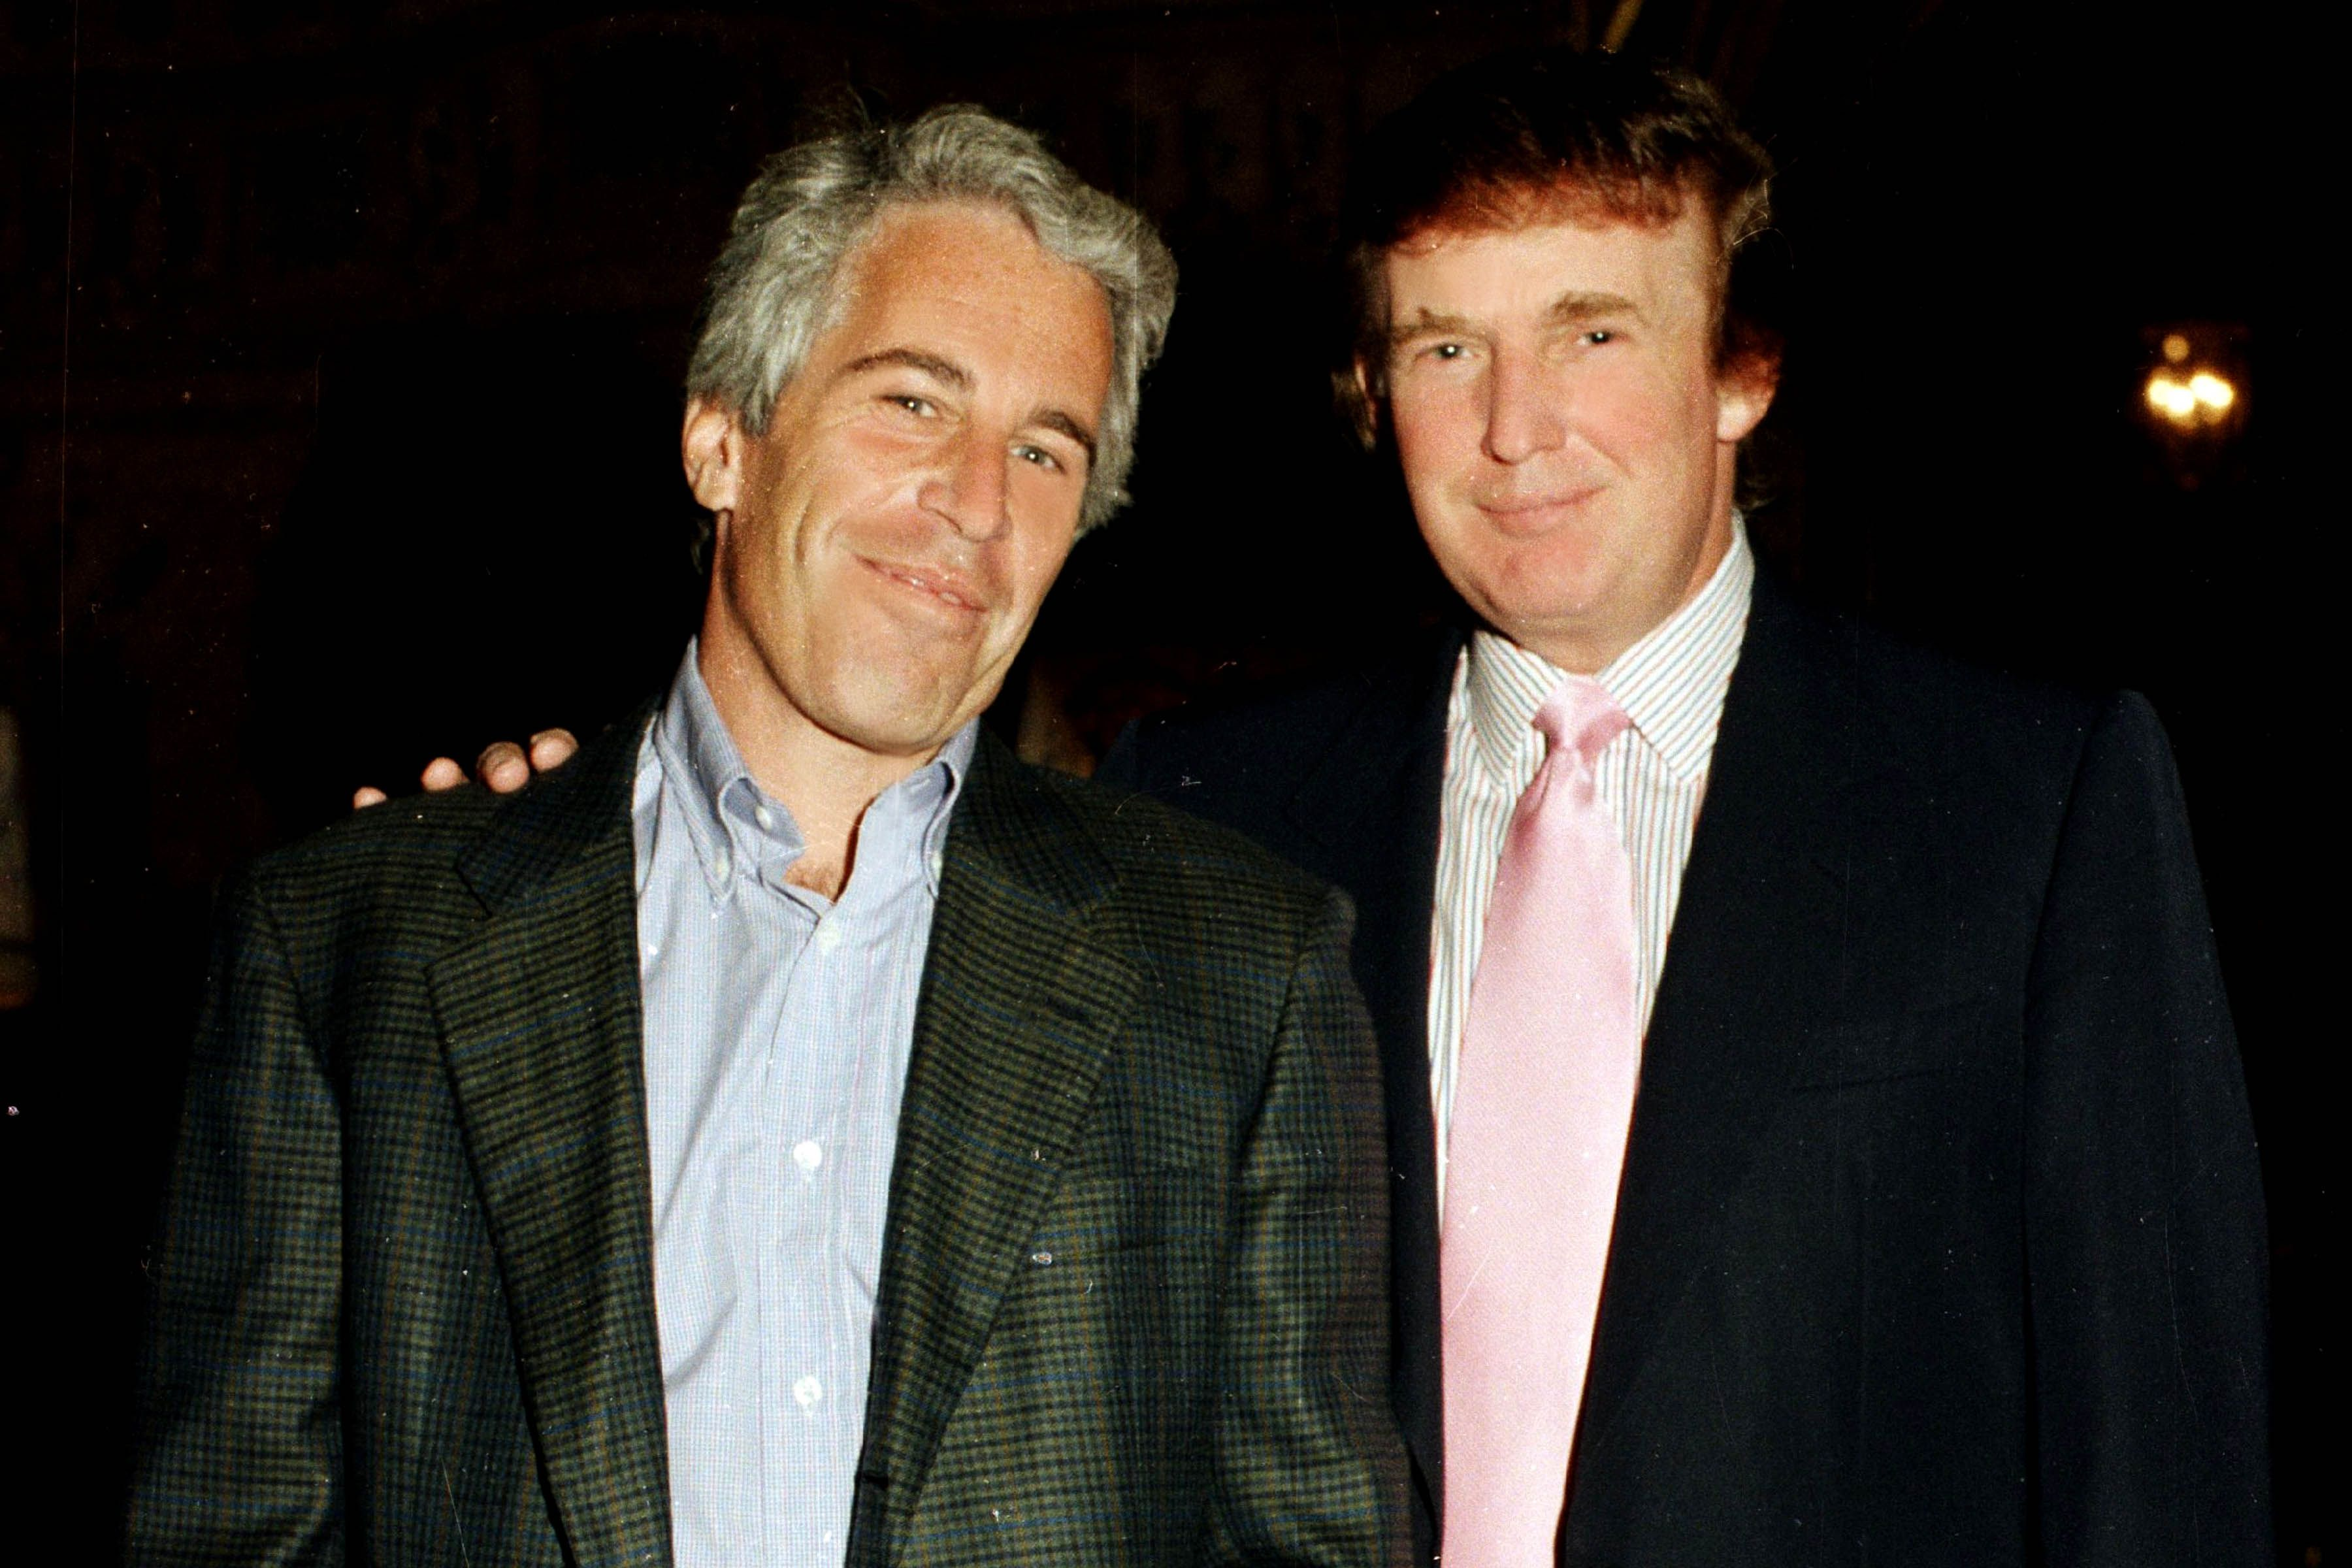 Jeffrey Epstein, Donald Trump, and a Russian Oligarch Is Peak Sleazy Corruption